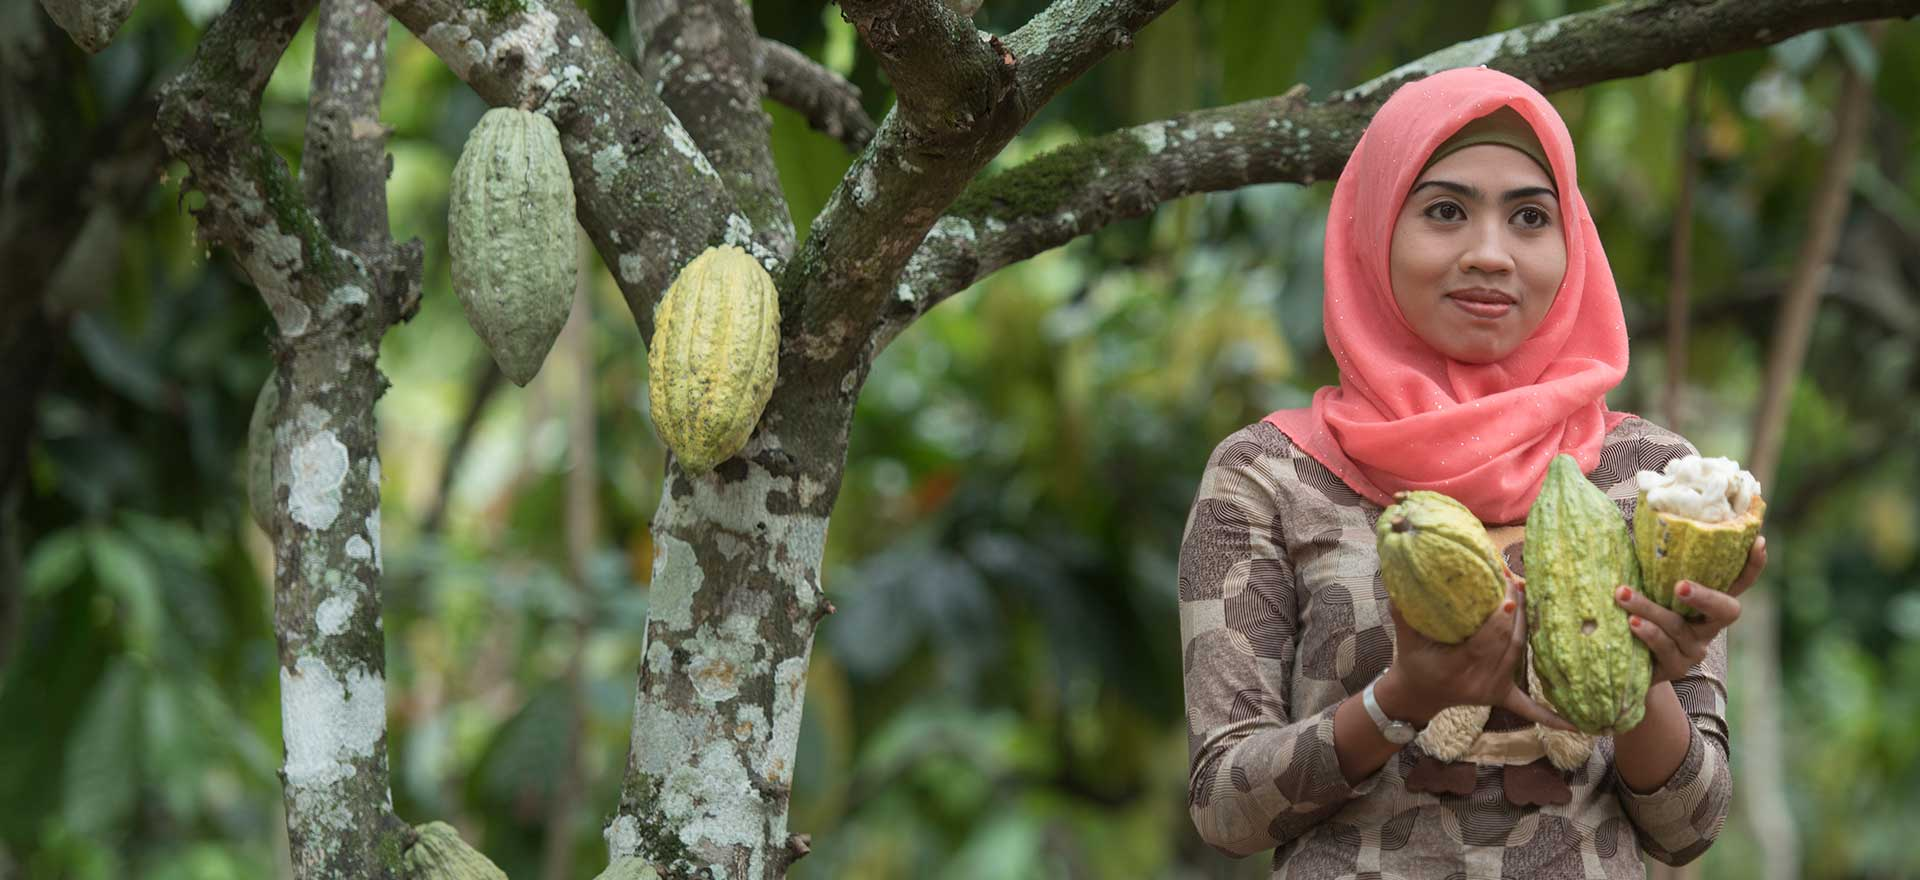 Indonesian woman smiling while standing next to a tree and holding fruits that have been picked from the tree.